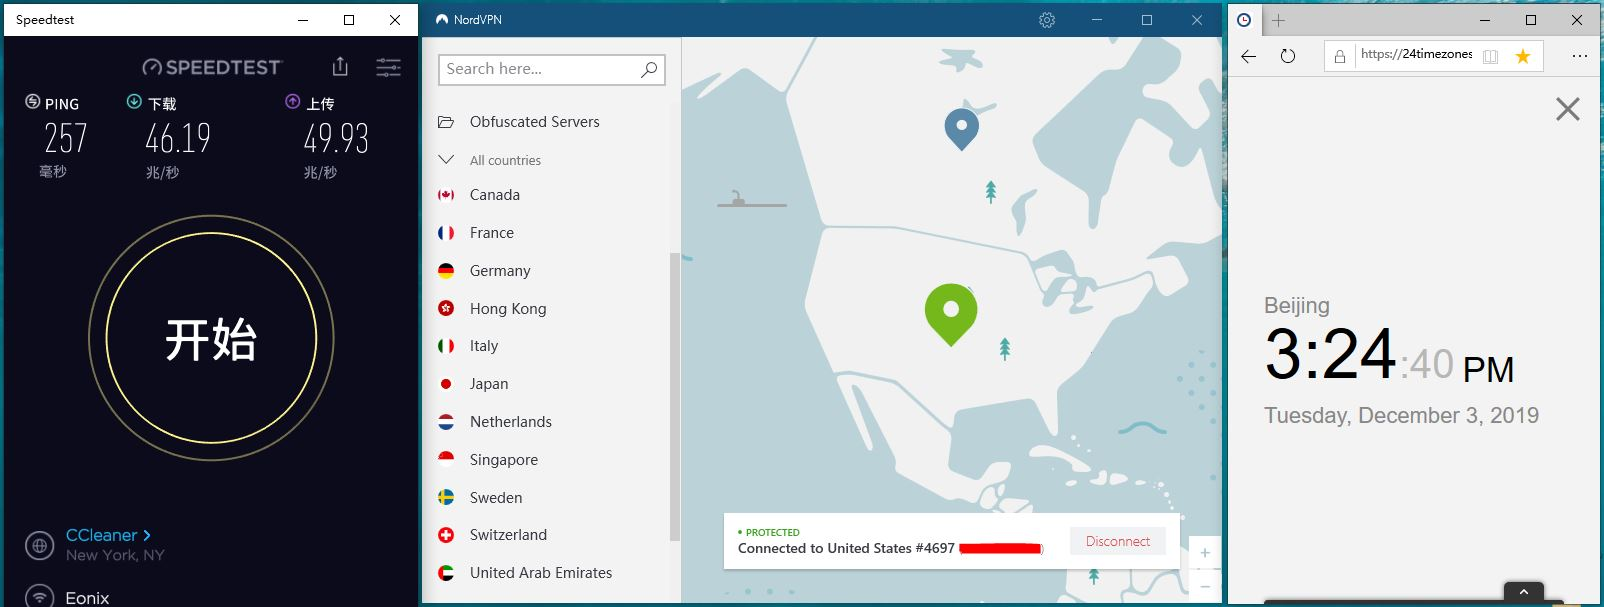 Windows NordVPN USA - 4697 中国VPN翻墙 科学上网 SpeedTest测试-20191203